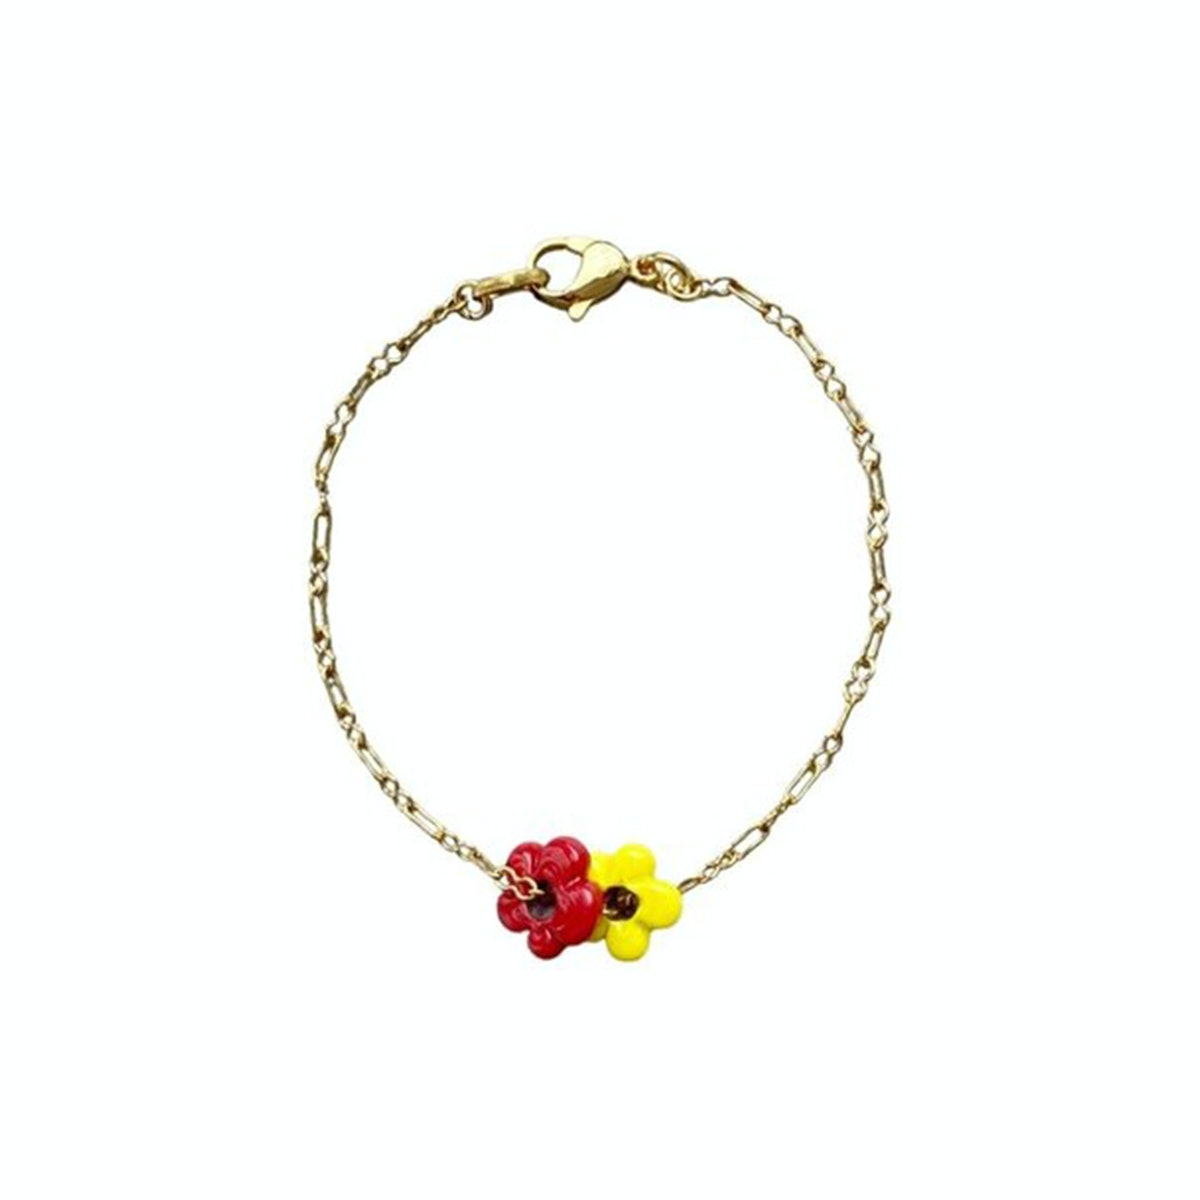 Notte Mini Wildflower bracelet and anklet